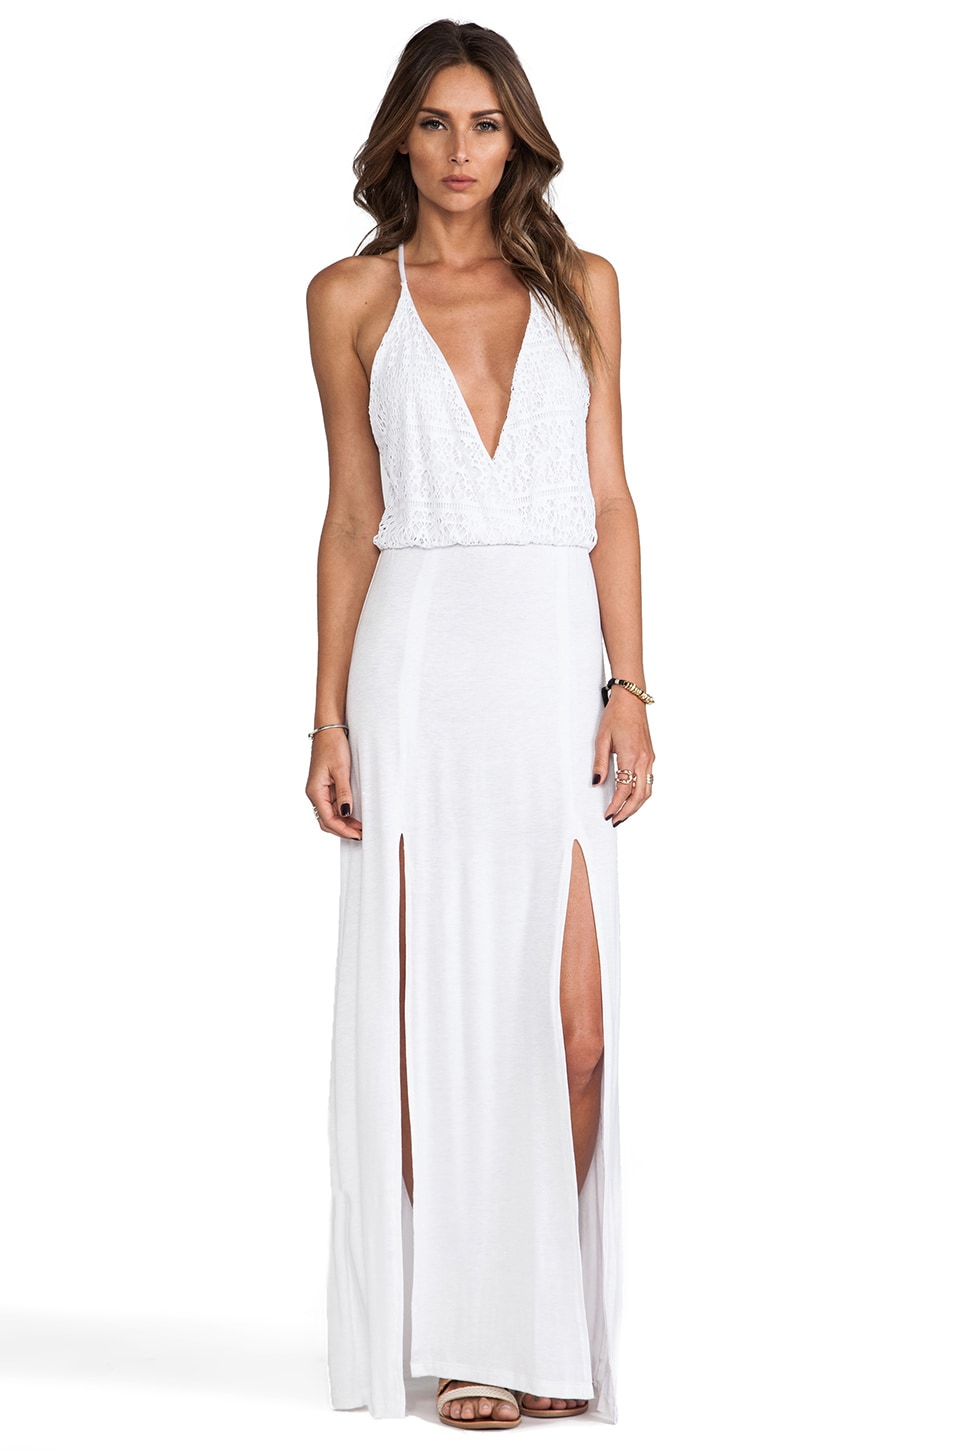 Bettinis Crochet Maxi Dress in White Wash